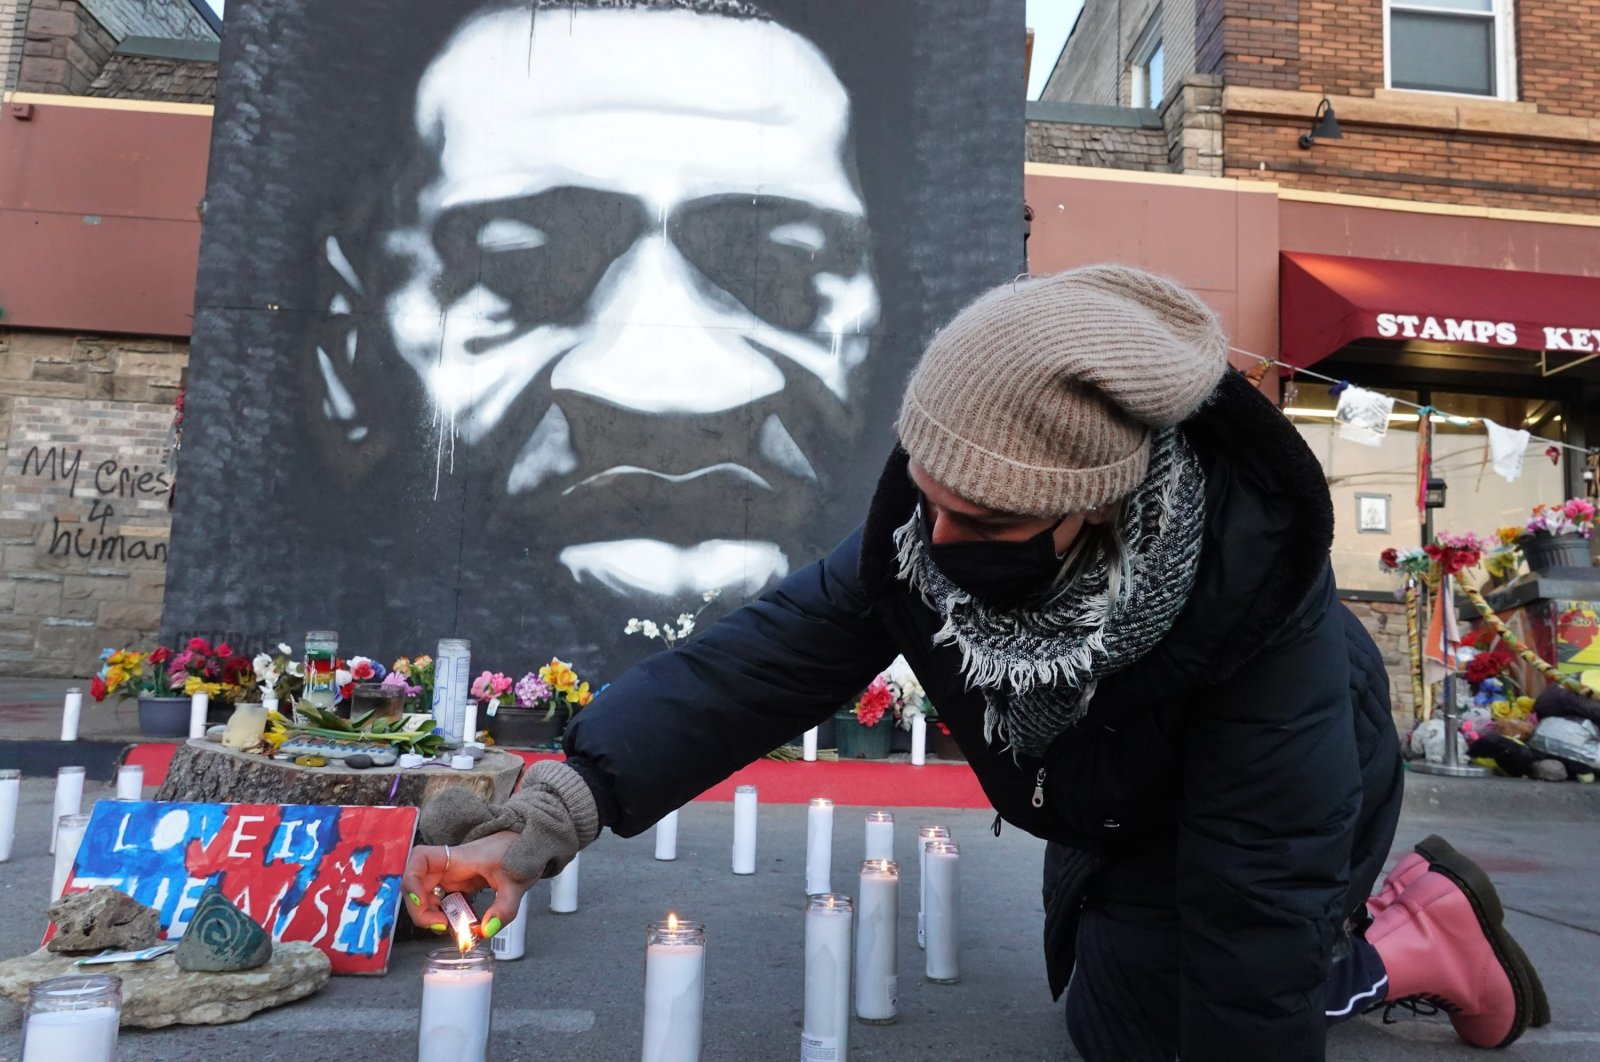 Community activists light candles at a memorial near the site where George Floyd died at the hands of former Minneapolis police officer Derek Chauvin in Minneapolis, Minnesota, U.S., March 28, 2021. (Getty Images/AFP Photo)